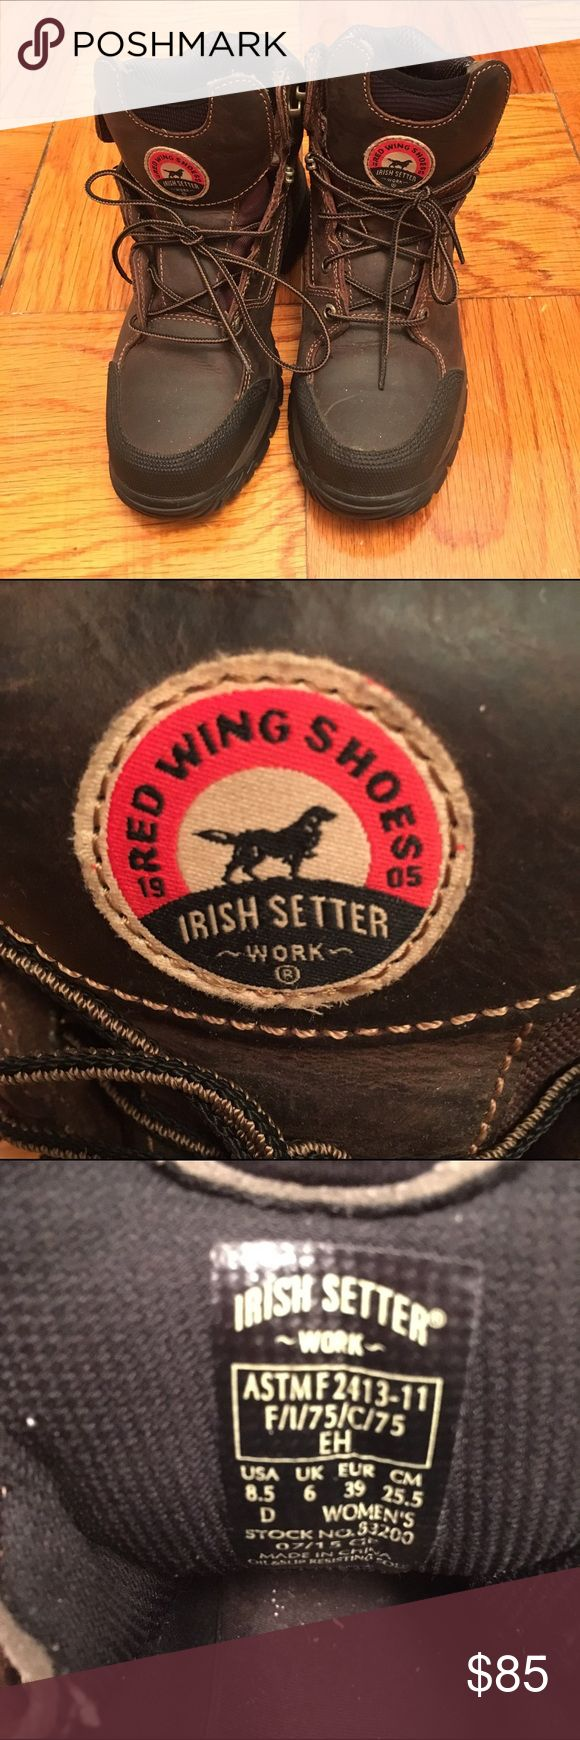 Red wing irish setter work Authentic. Never been used. No box. Selling for a friend so price firm. Red Wing Shoes Shoes Boots